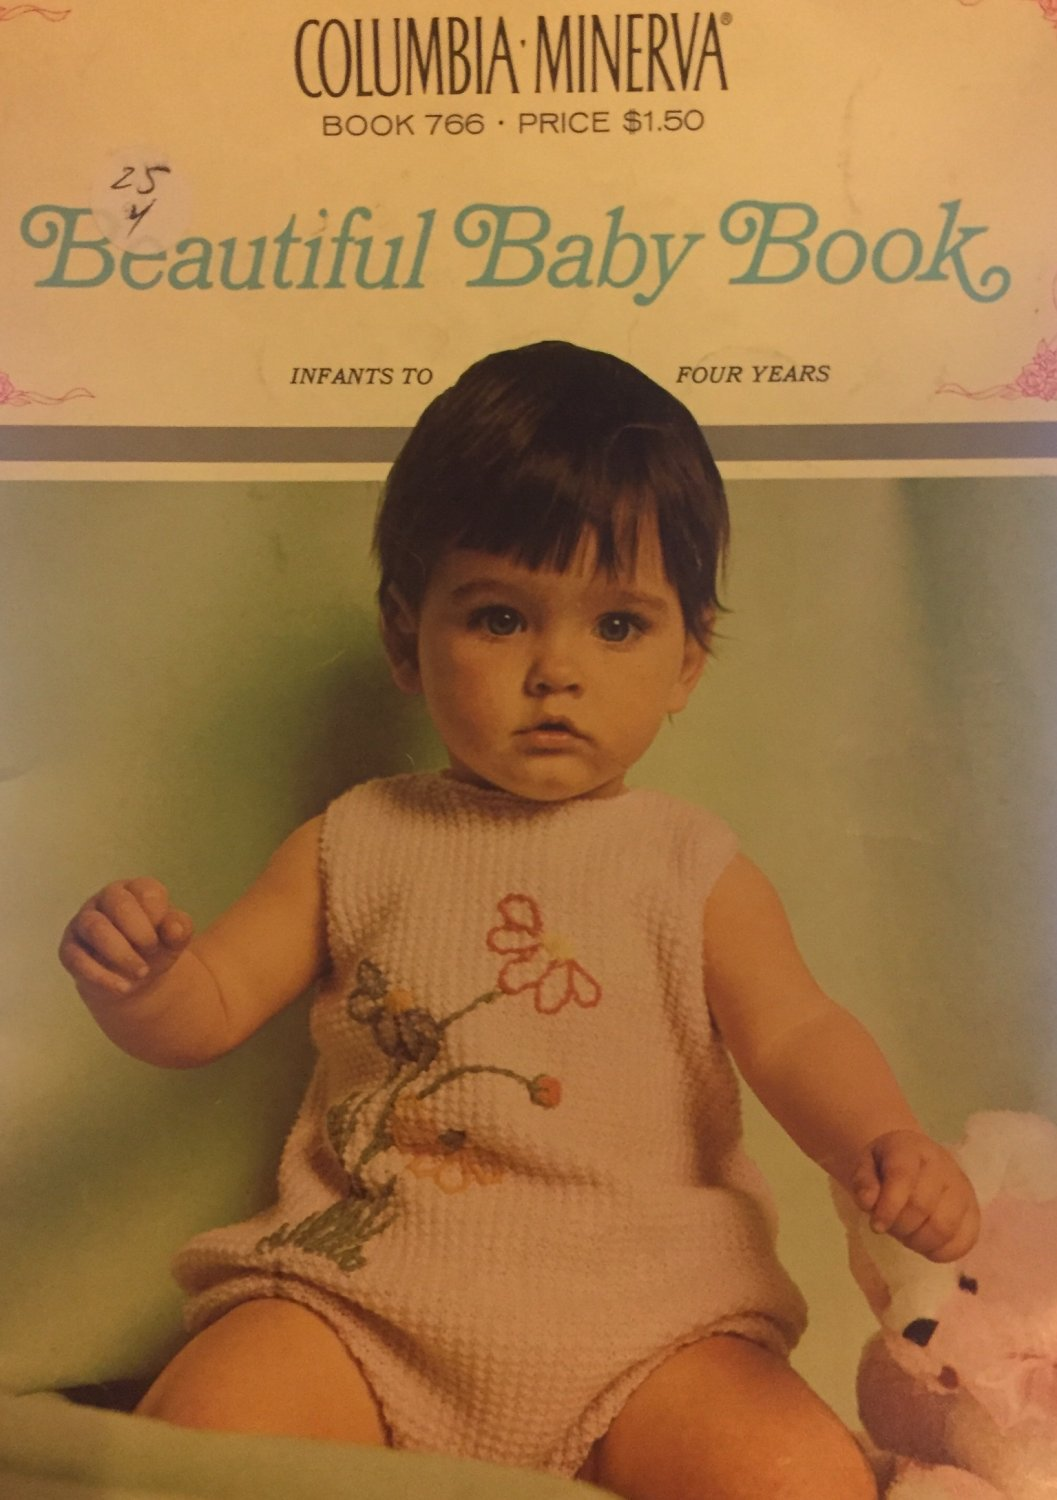 Beautiful Baby Book Knitting Pattern Baby afghan baby booties Columbia Minerva Book 766